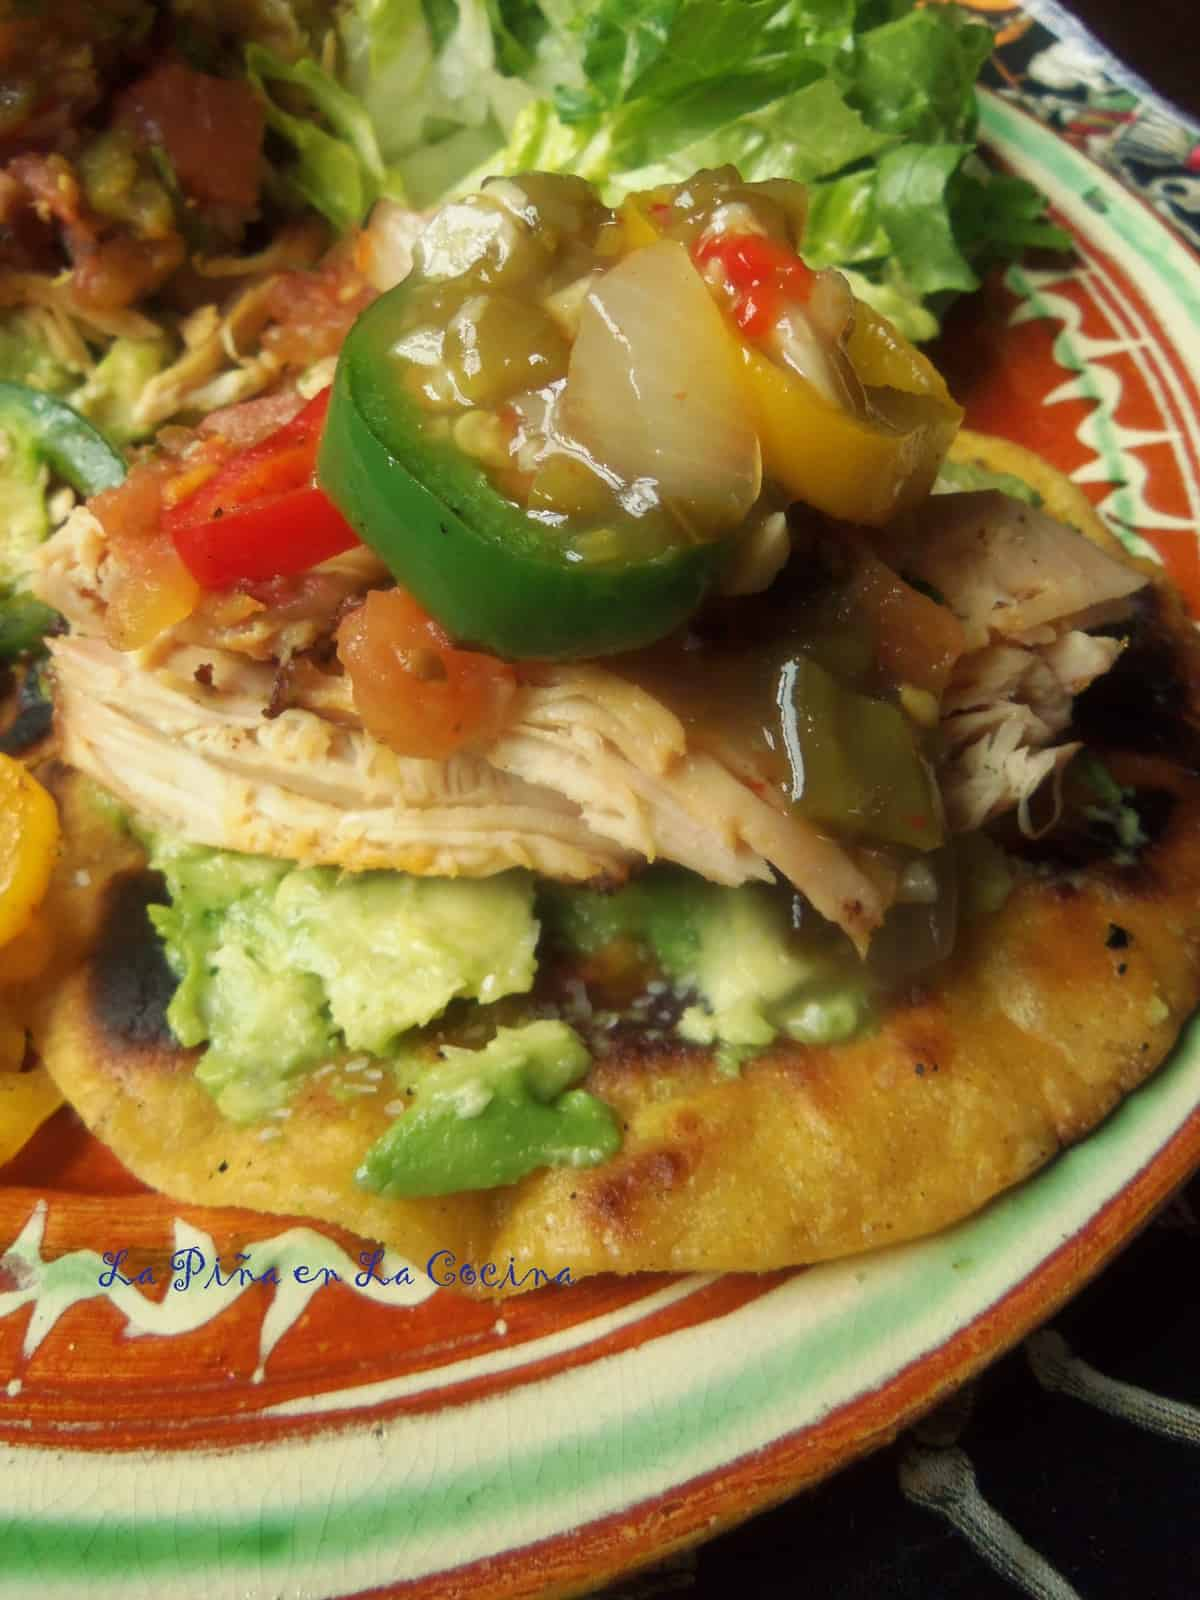 Smoky Chicken Tostadas with Smoked Pico de Gallo, Grilled Chile Pepper Sauce and Sauteed Peppers